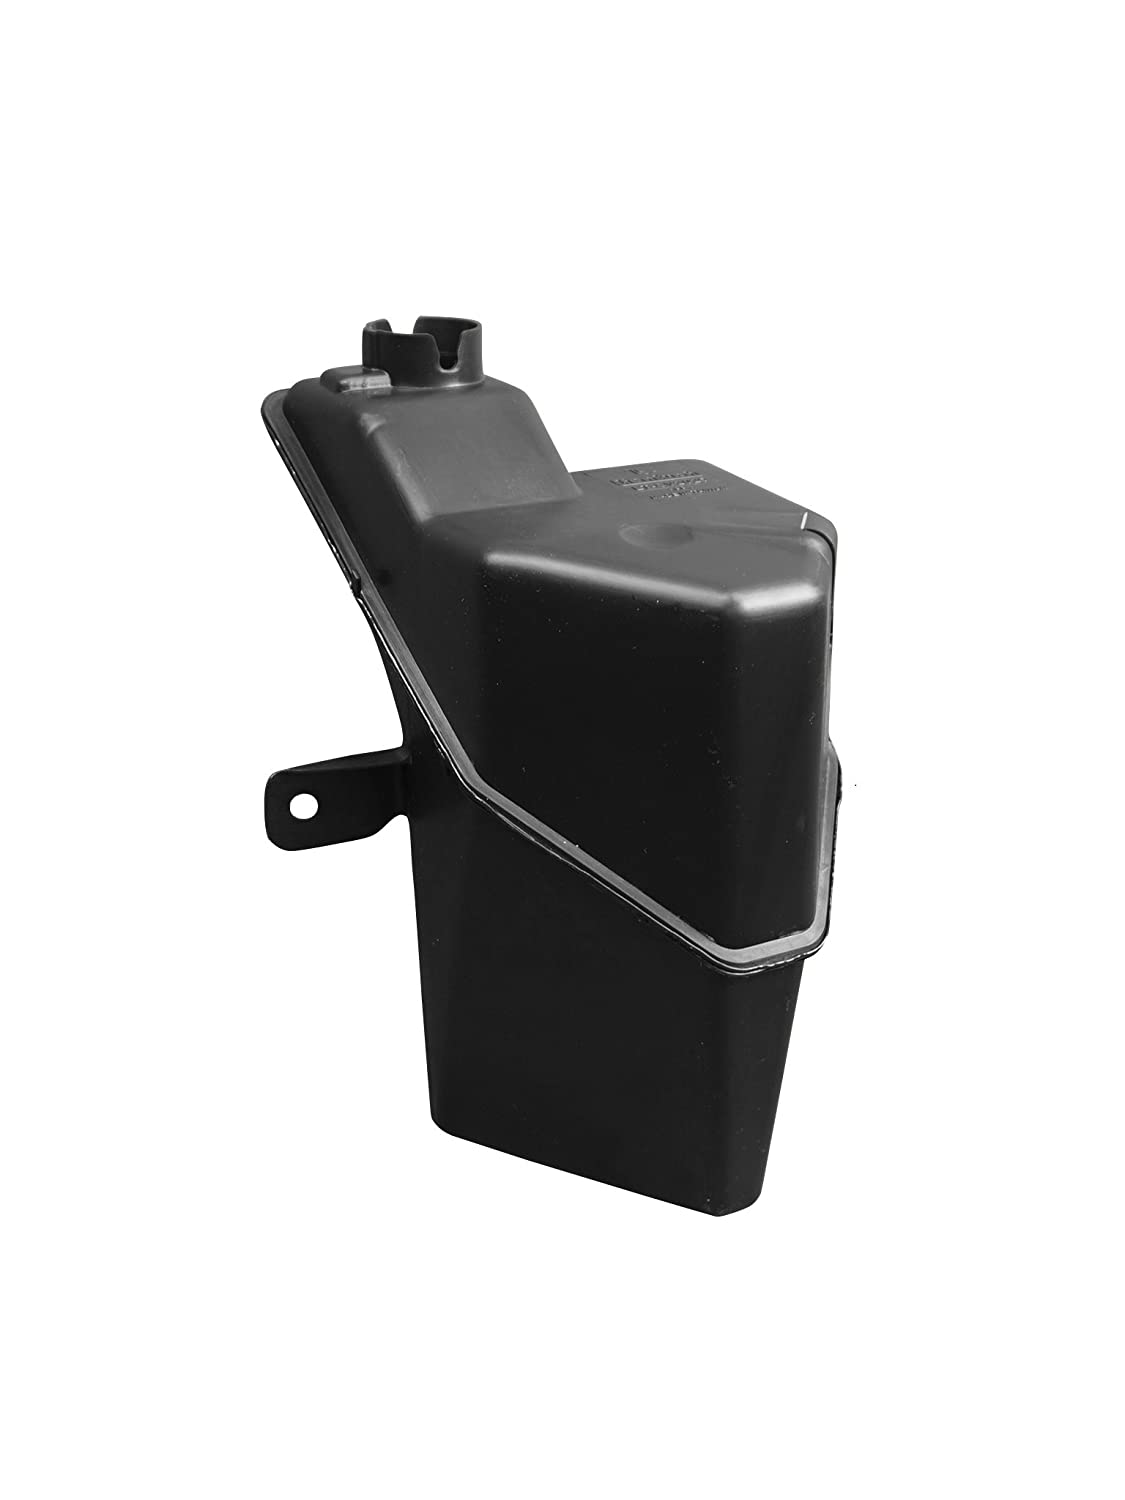 IAMAUTO 391933 For Camaro Coolant Tank Overflow Bottle Reservoir Recovery 2010 2011 2012 2013 2014 2015